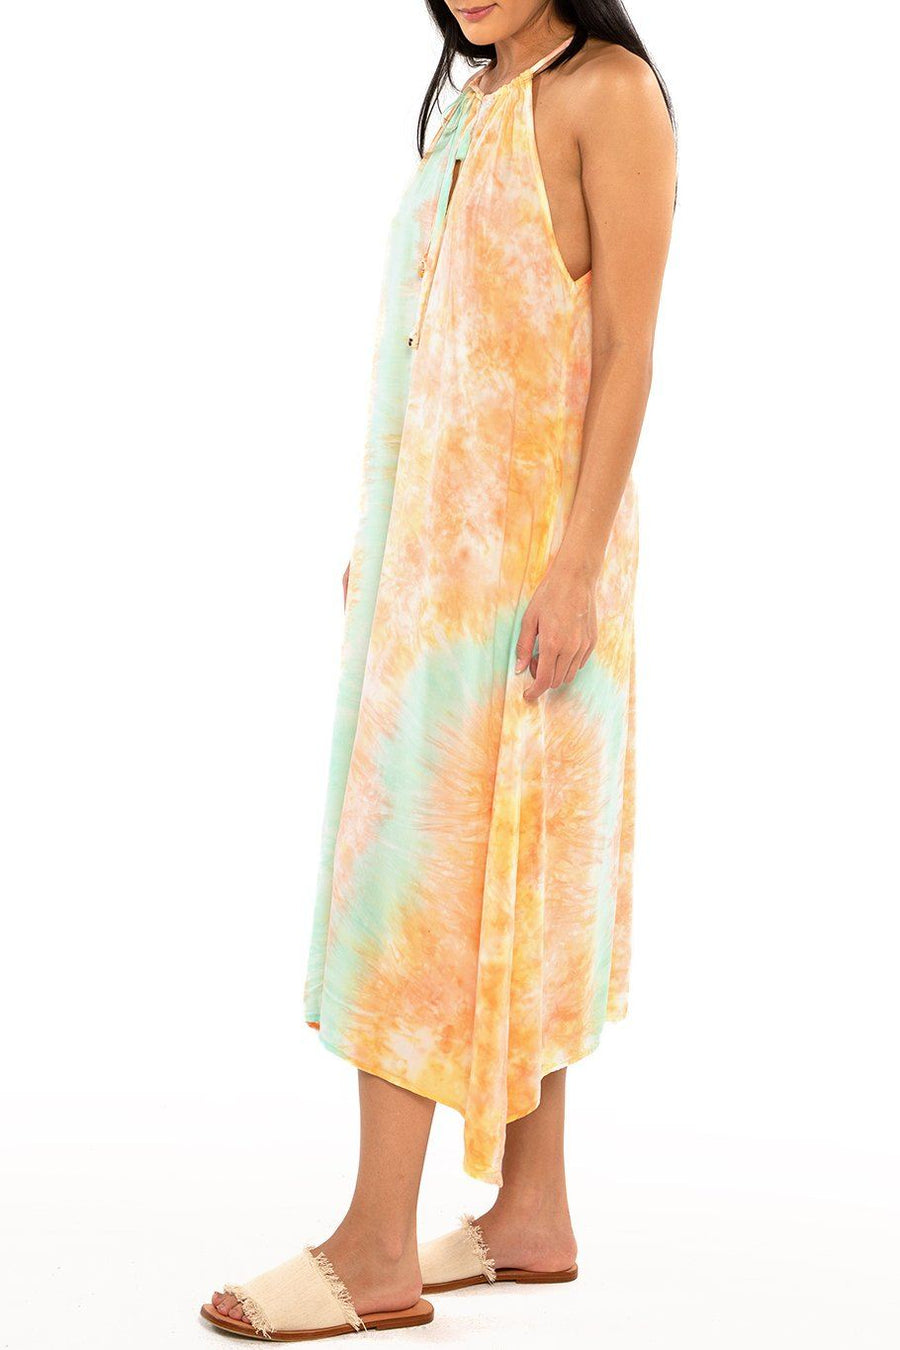 Tahiti Tie Dress - Sunset Dye - Shore